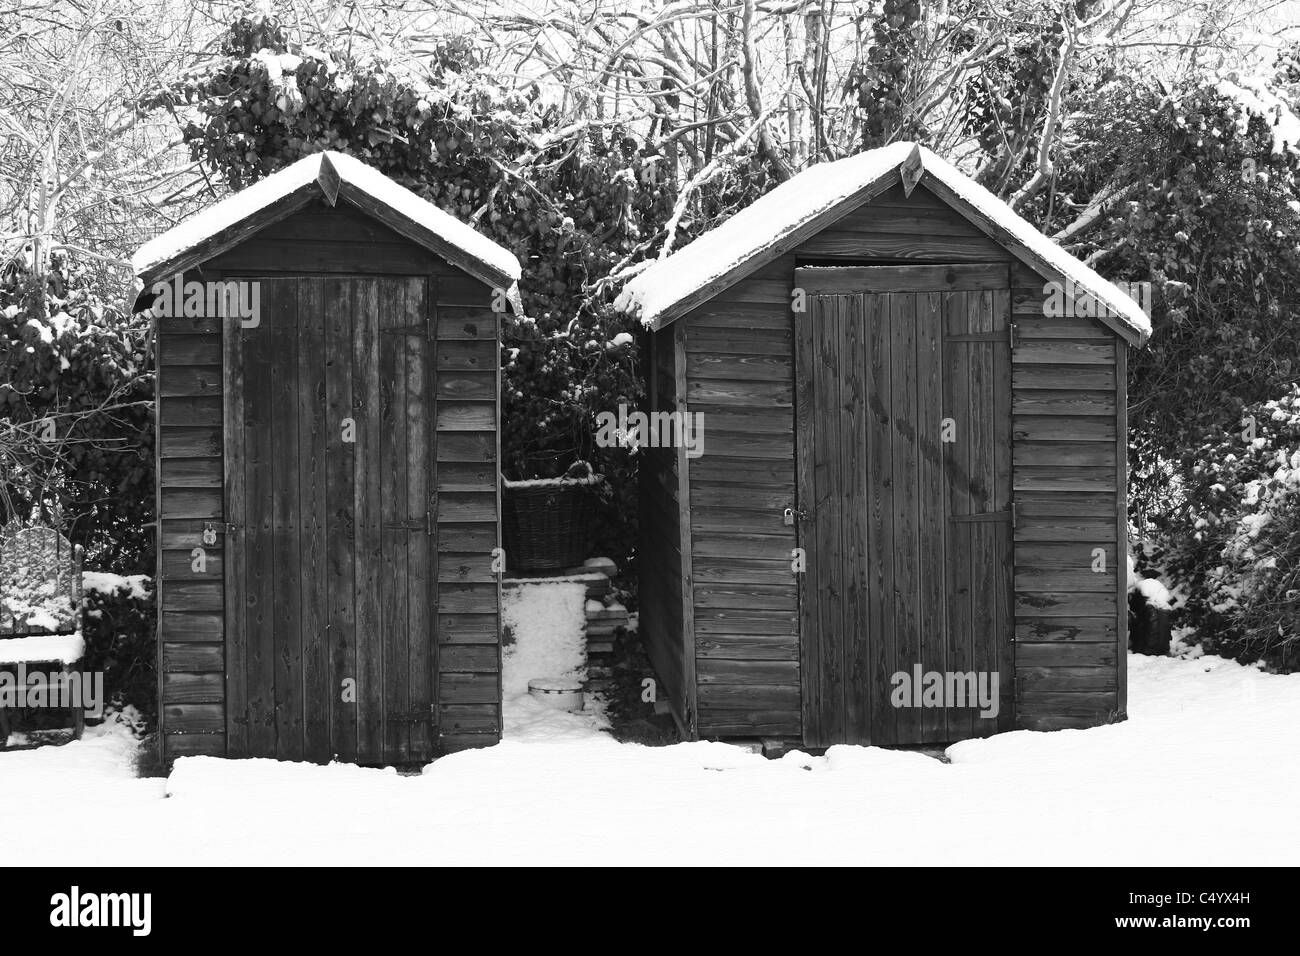 Wooden sheds in a snow-covered garden - Stock Image